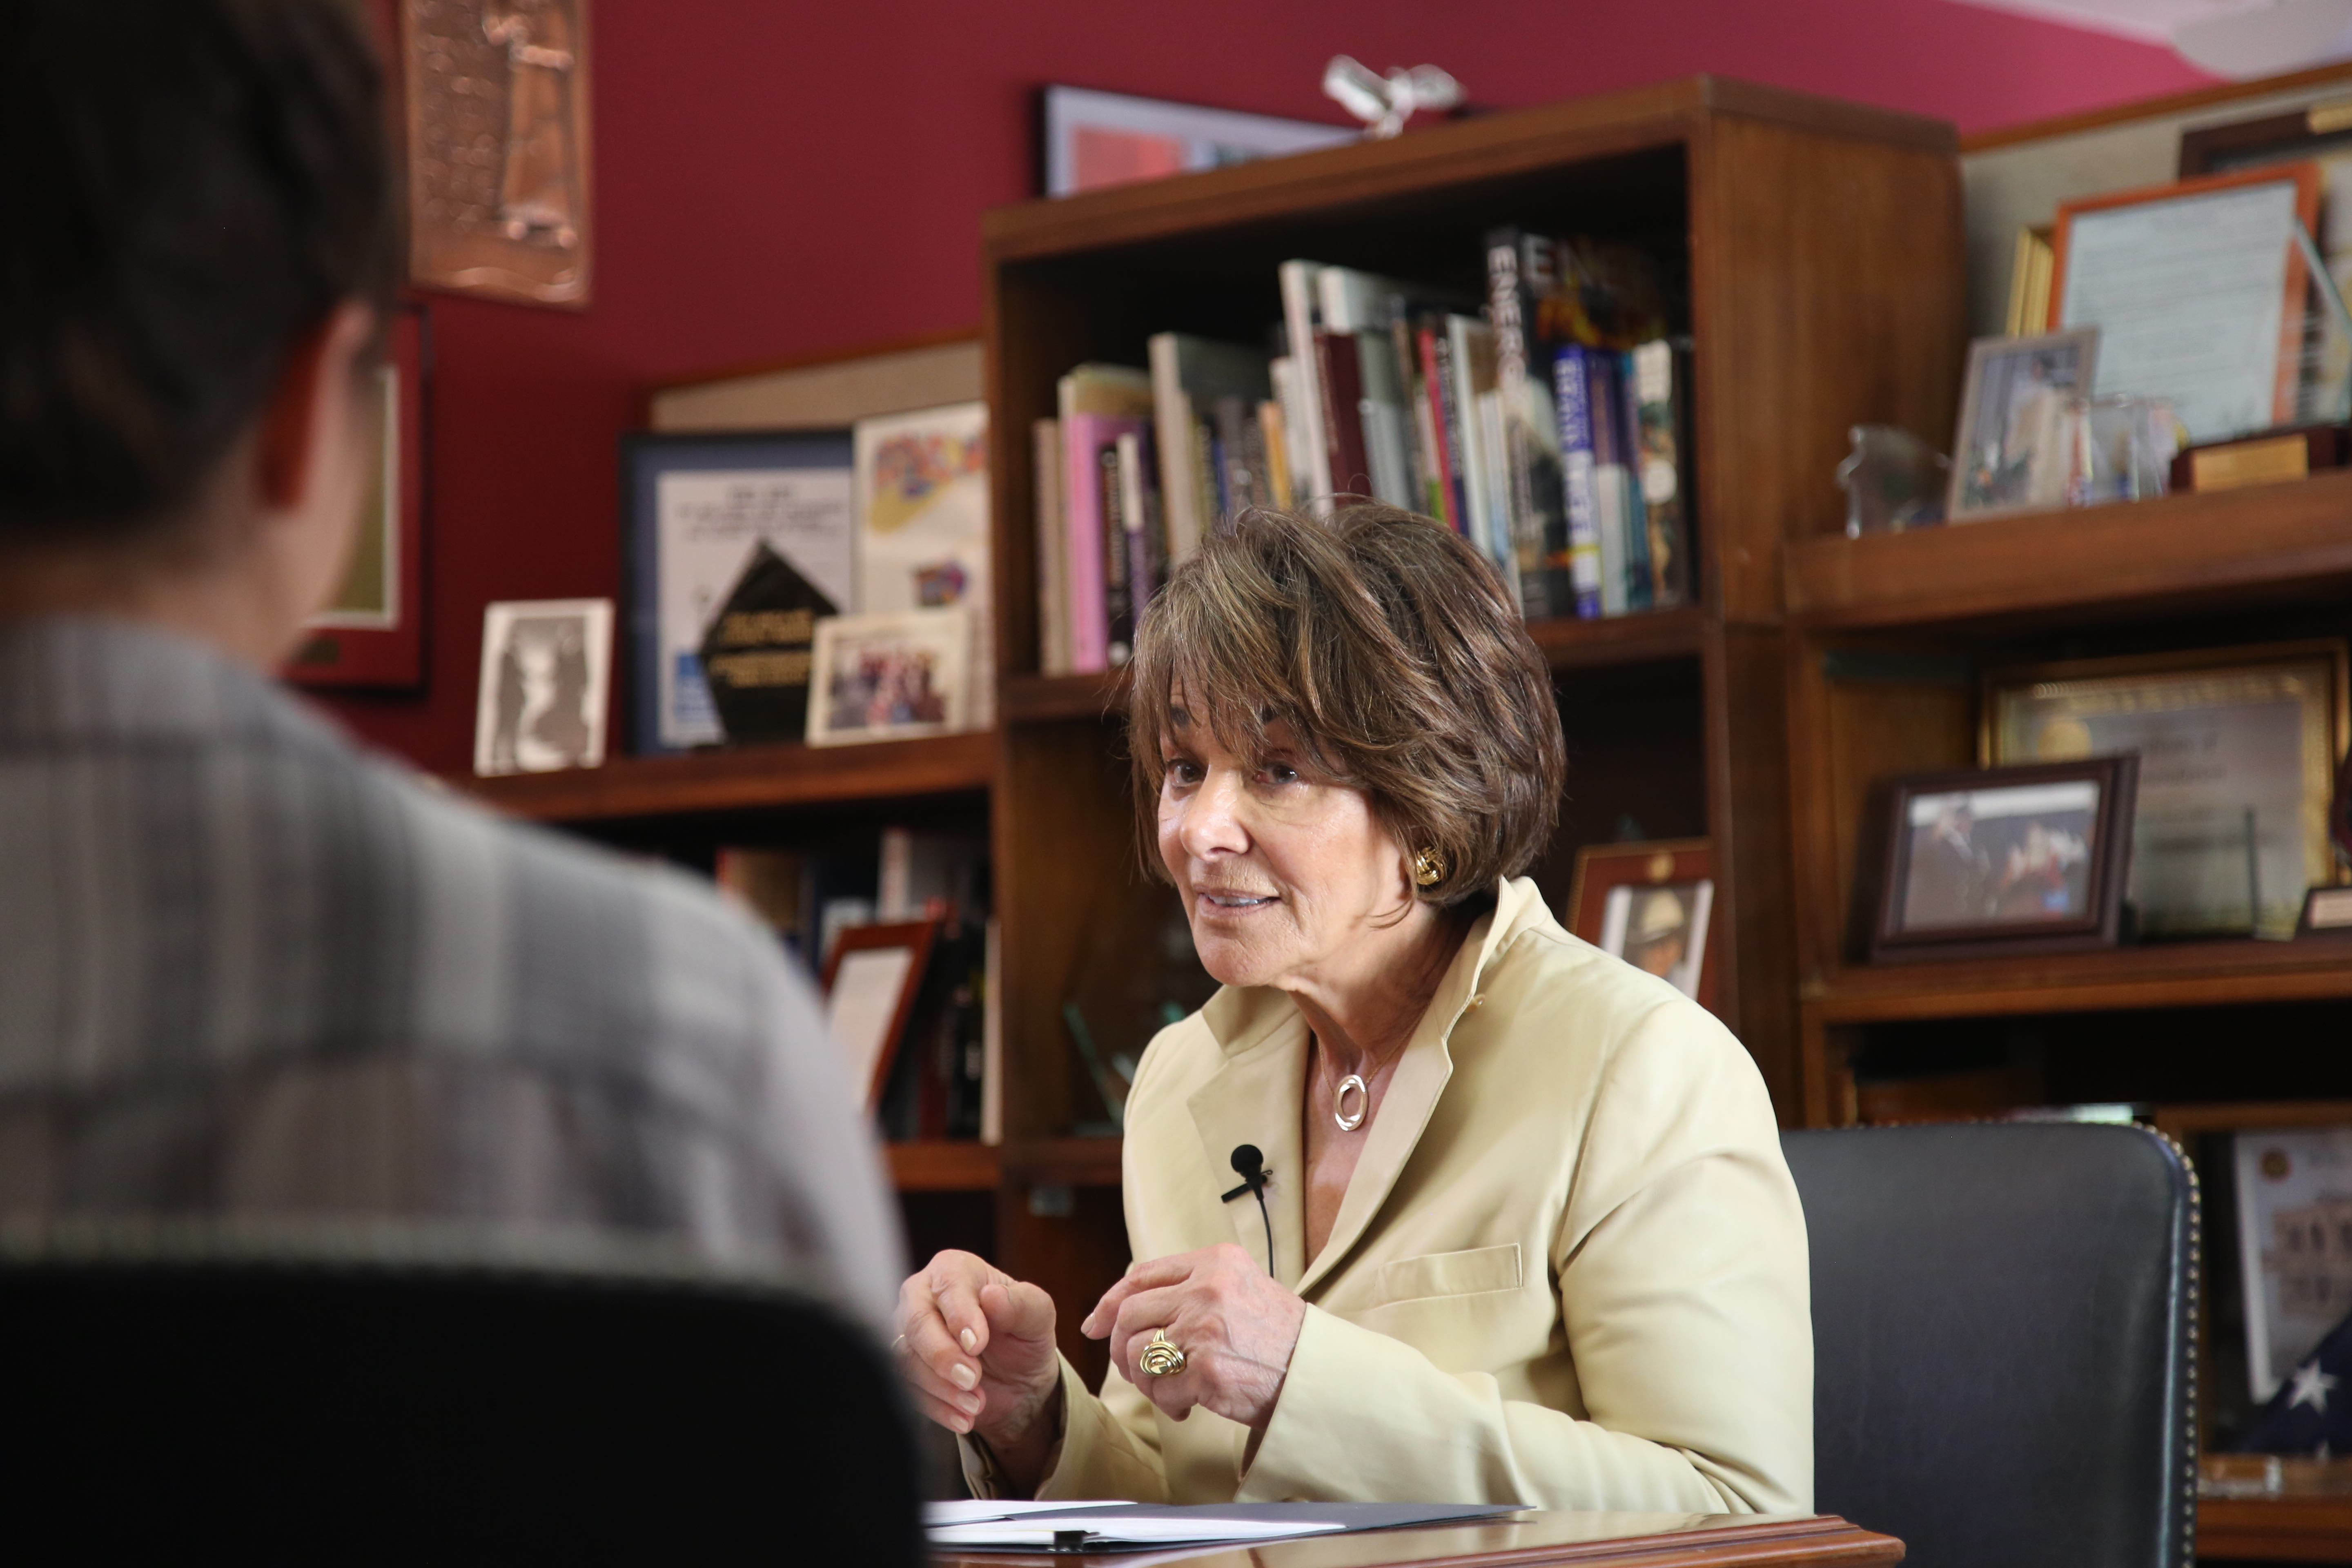 Congresswoman Anna Eshoo pauses a moment during her response to Zoë Schiffer's question on the security of the upcoming election in relation to the attempted hacking attempts in 2016. The  interview was at her Palo Alto office, Thursday, Nov. 1. (Melanie Hogue/Peninsula Press)